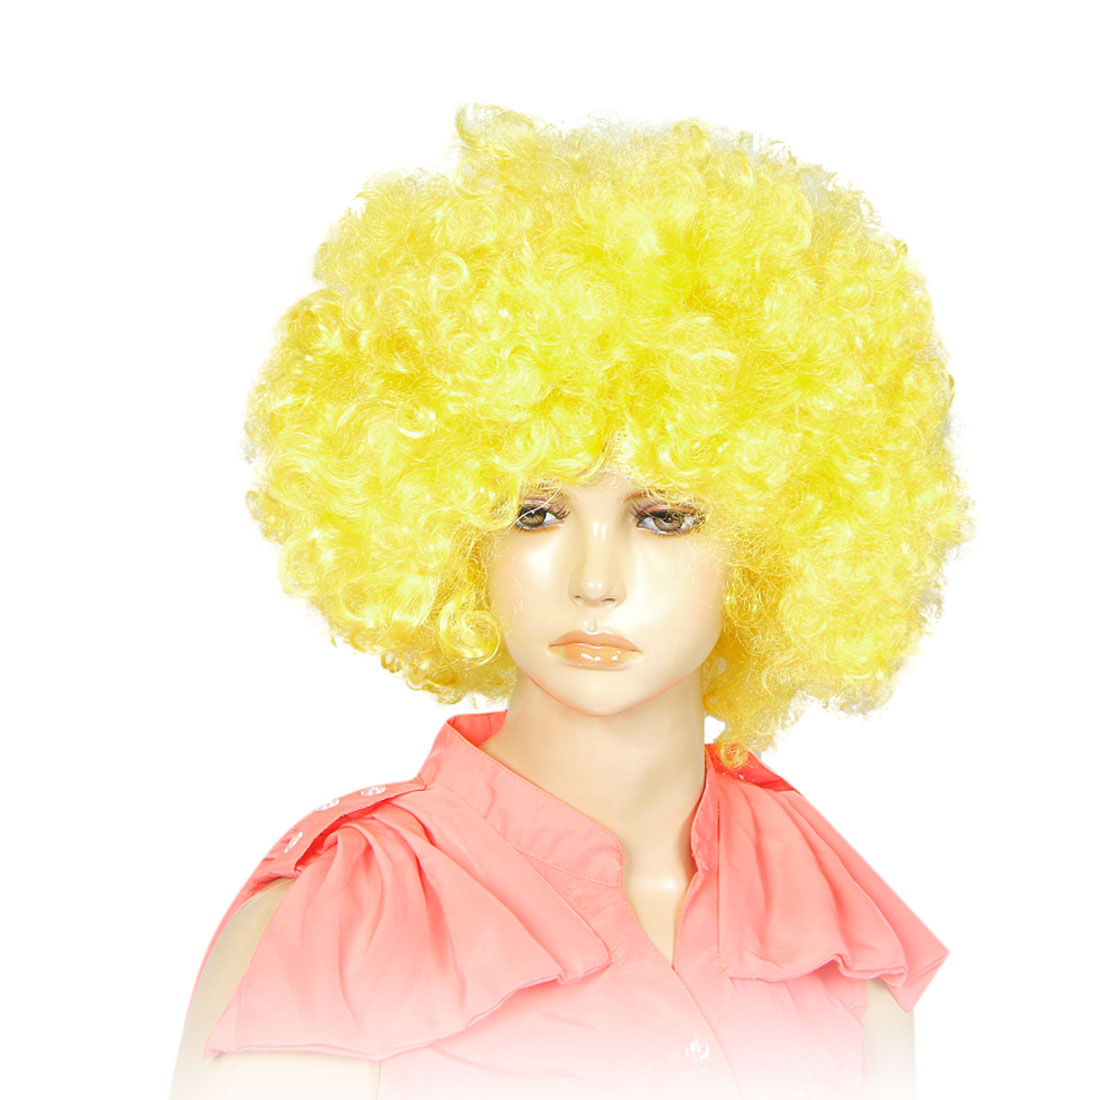 Ladies Manmade Funny Hairstyle Hair Dressing Curl Up Party Wig Yellow